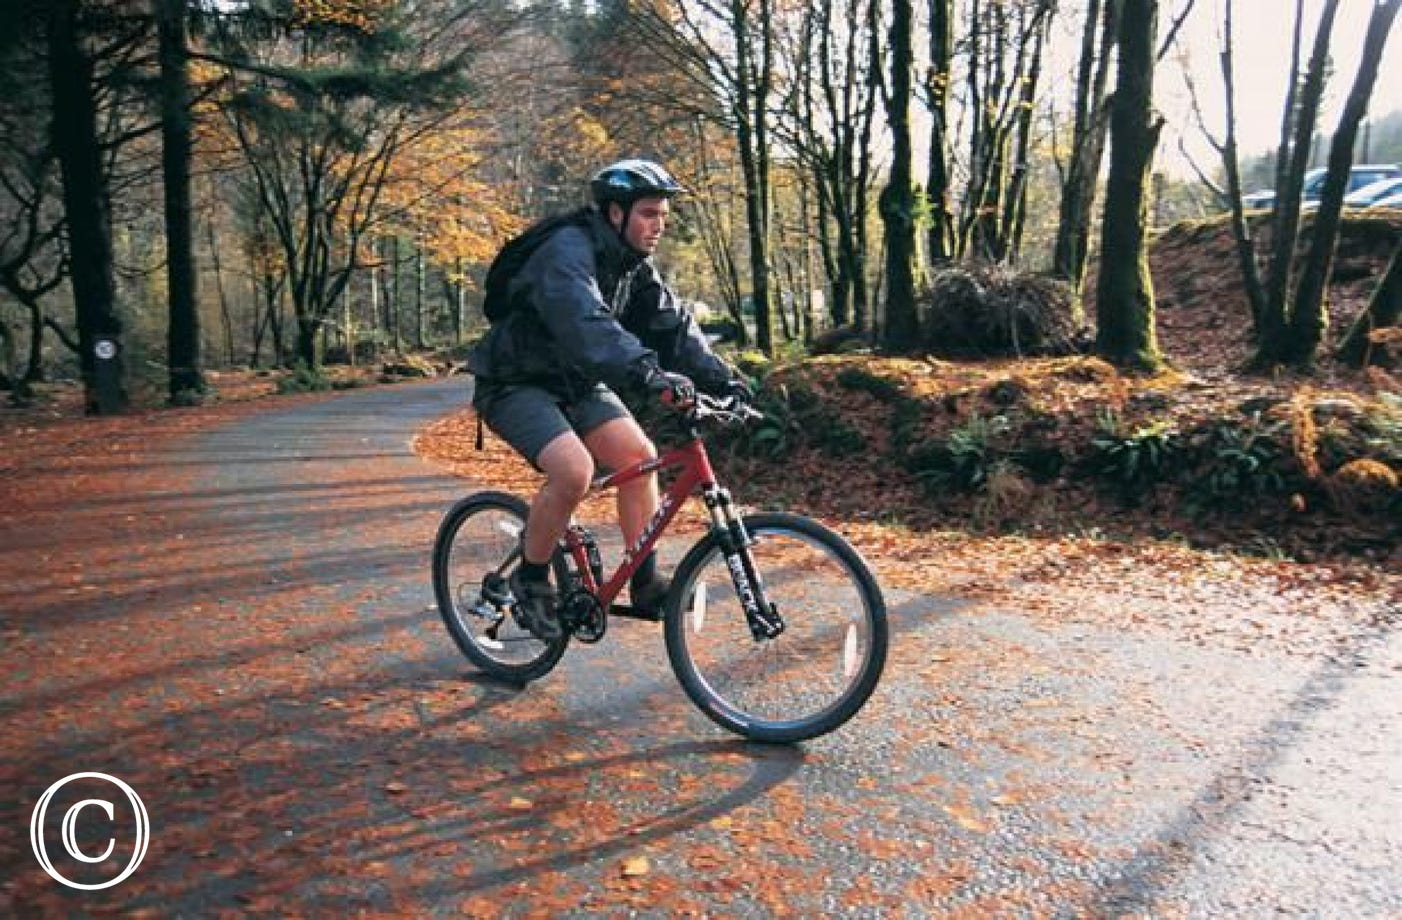 Dyfi Mountain Biking offers a range of mountain biking tracks (5 miles)